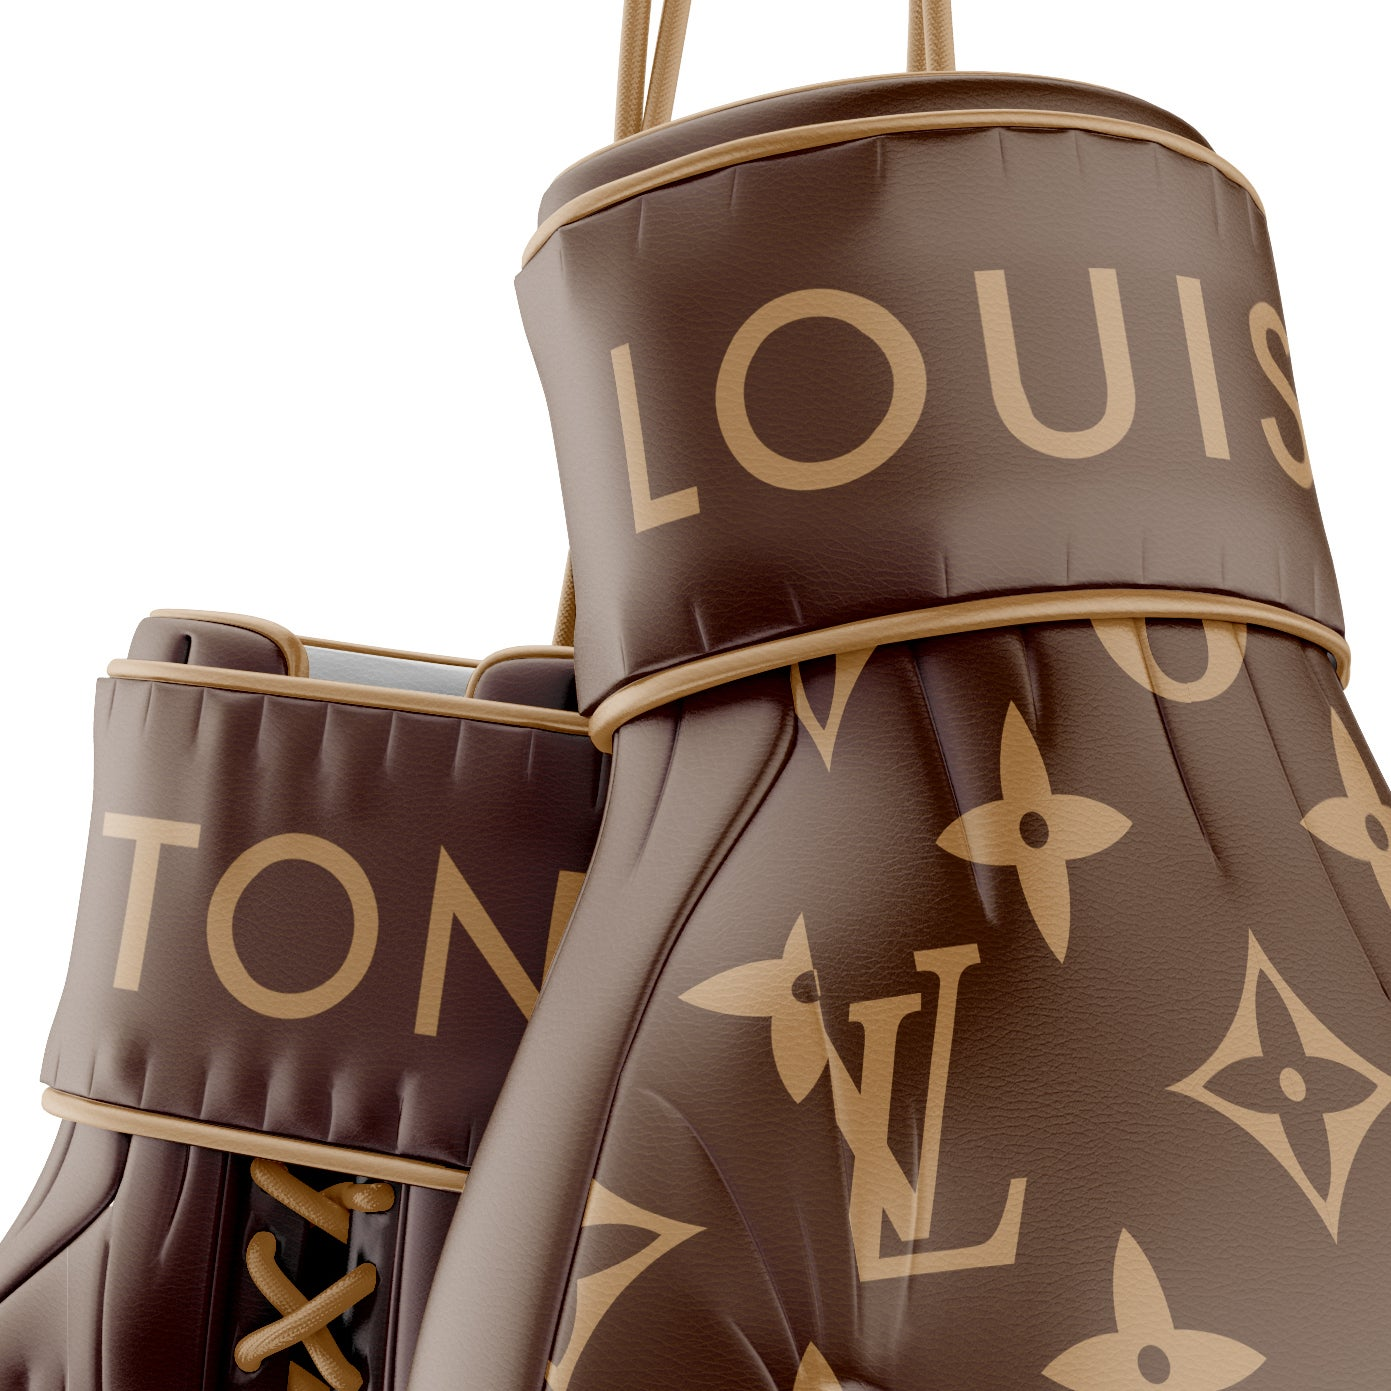 Supreme X Louis Vuitton Brown Boxing Gloves Limited Prints Shipped